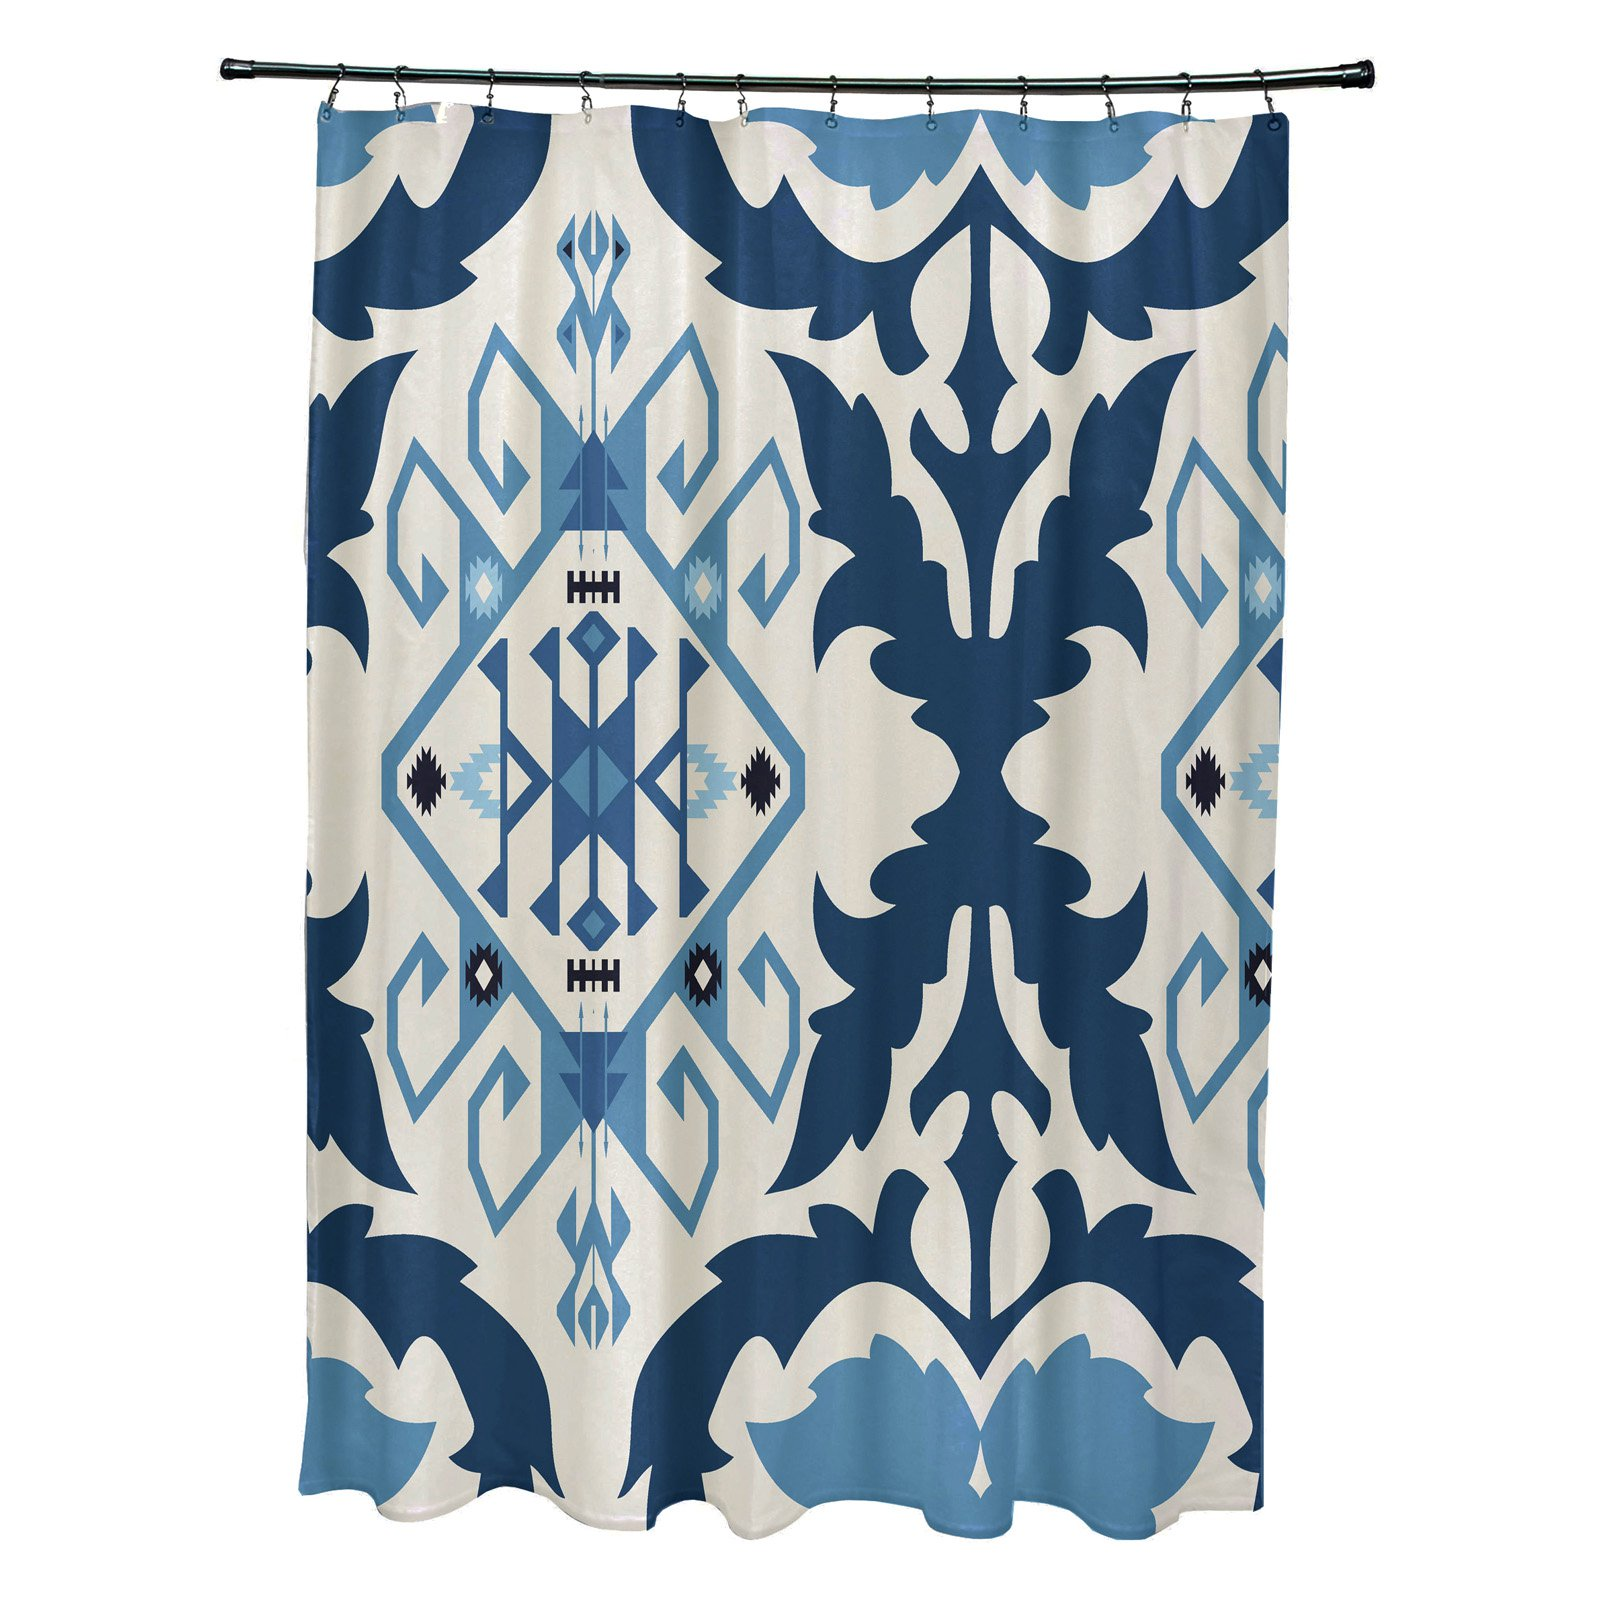 E By Design Bombay 6 Shower Curtain Shower Curtains Walmart Colorful Shower Curtain Printed Shower Curtain